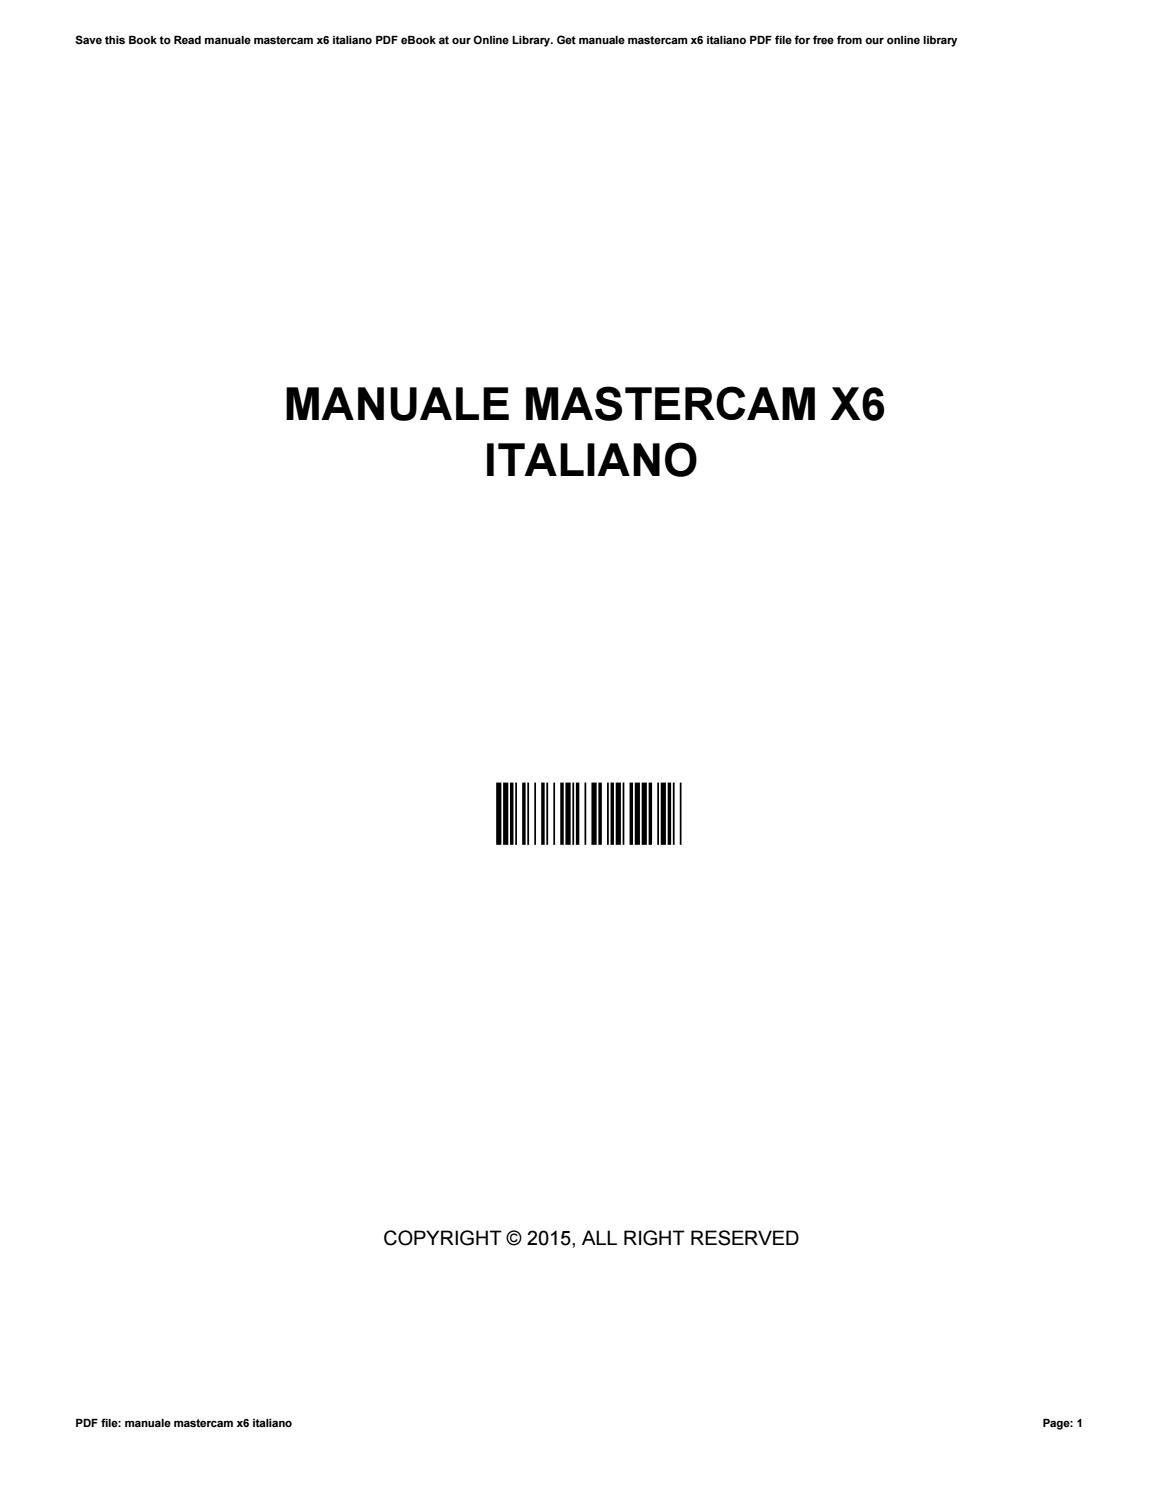 manuale master cam browse manual guides u2022 rh trufflefries co Kindle Getting Started Guide Getting Started Guide Weight Watchers